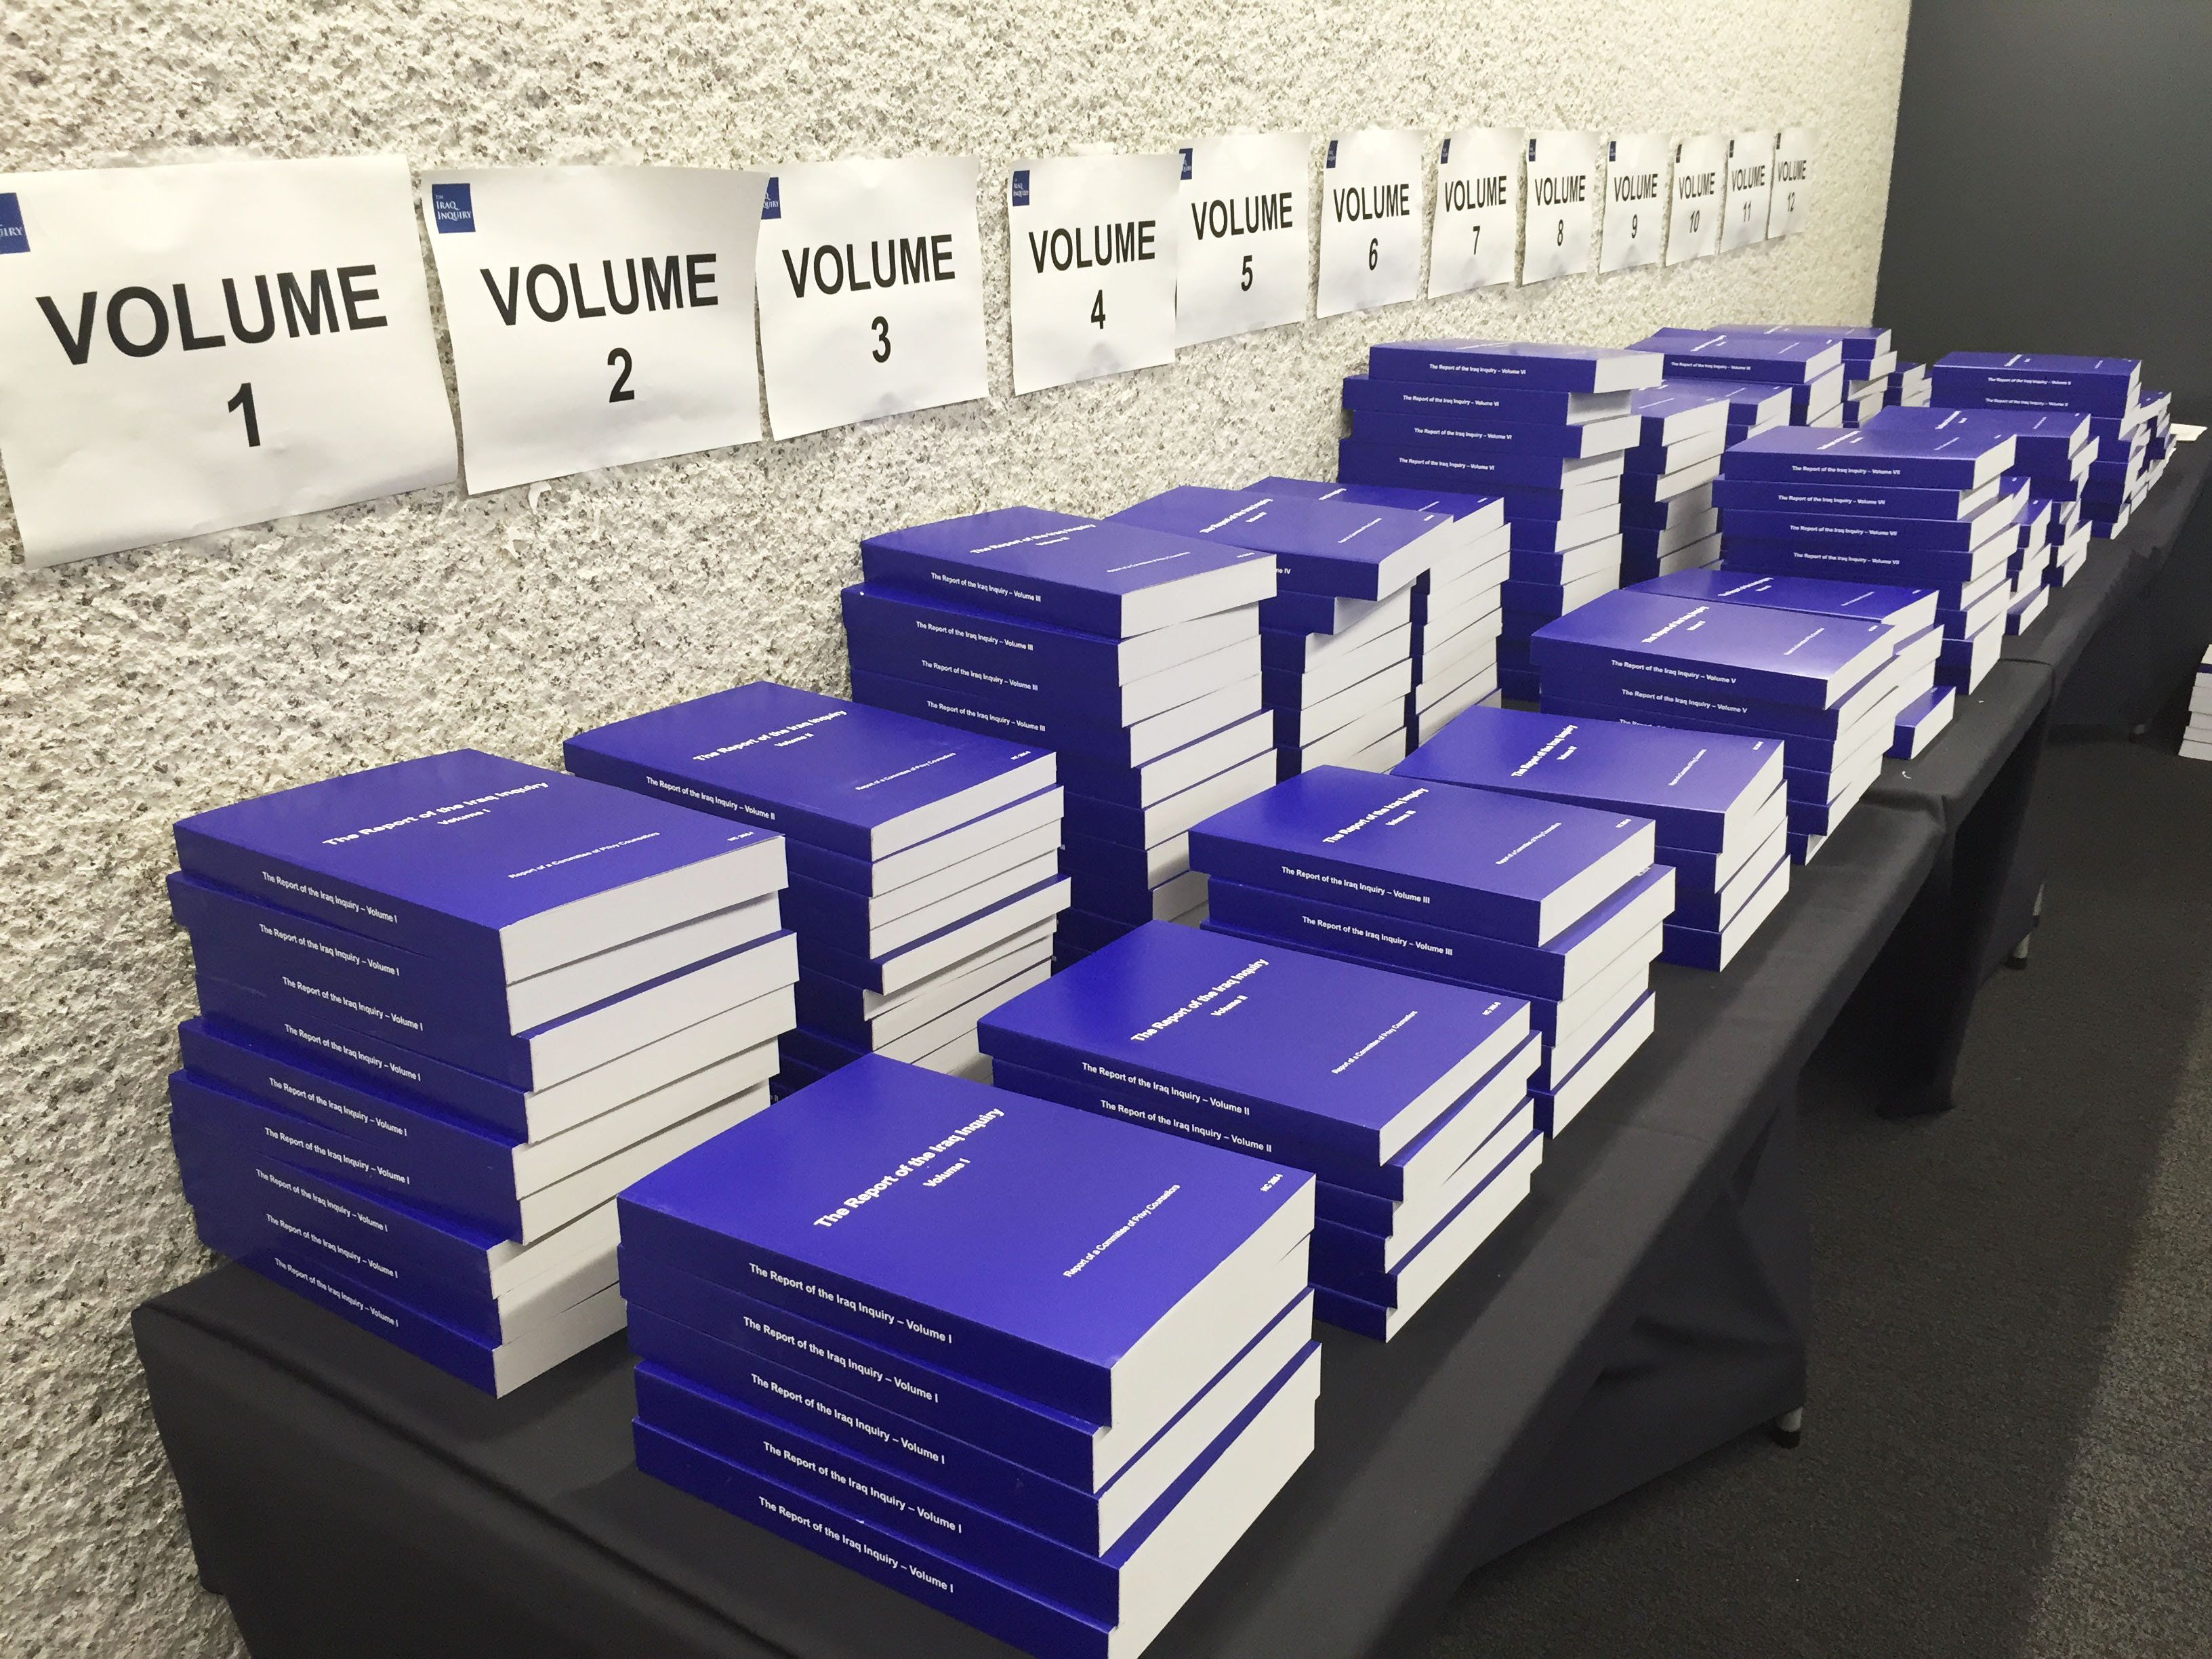 Copies of the long-awaited